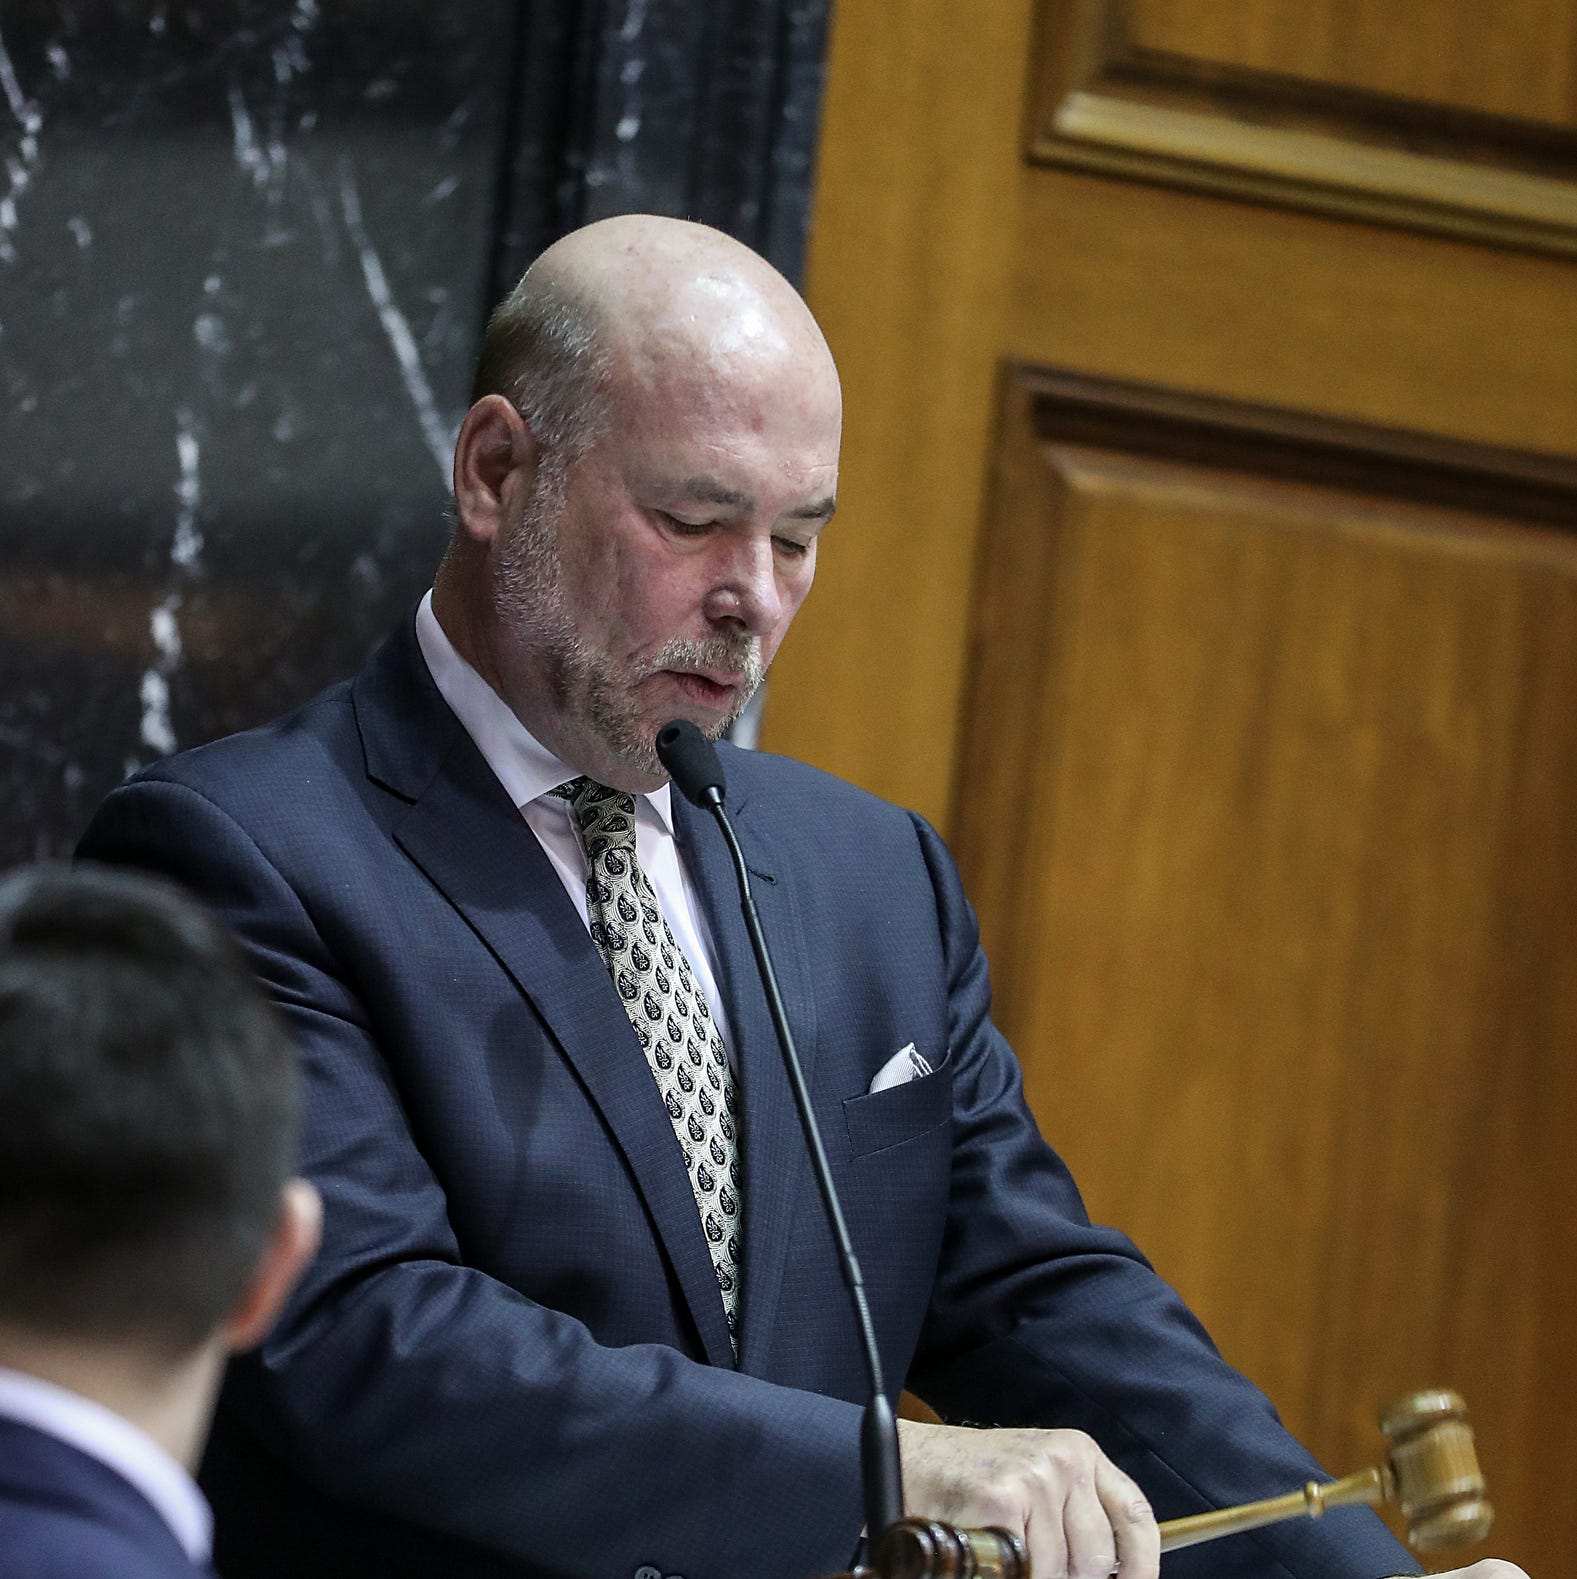 House ethics committee dismisses complaint against Speaker Bosma due to lack of 'reasonable cause'